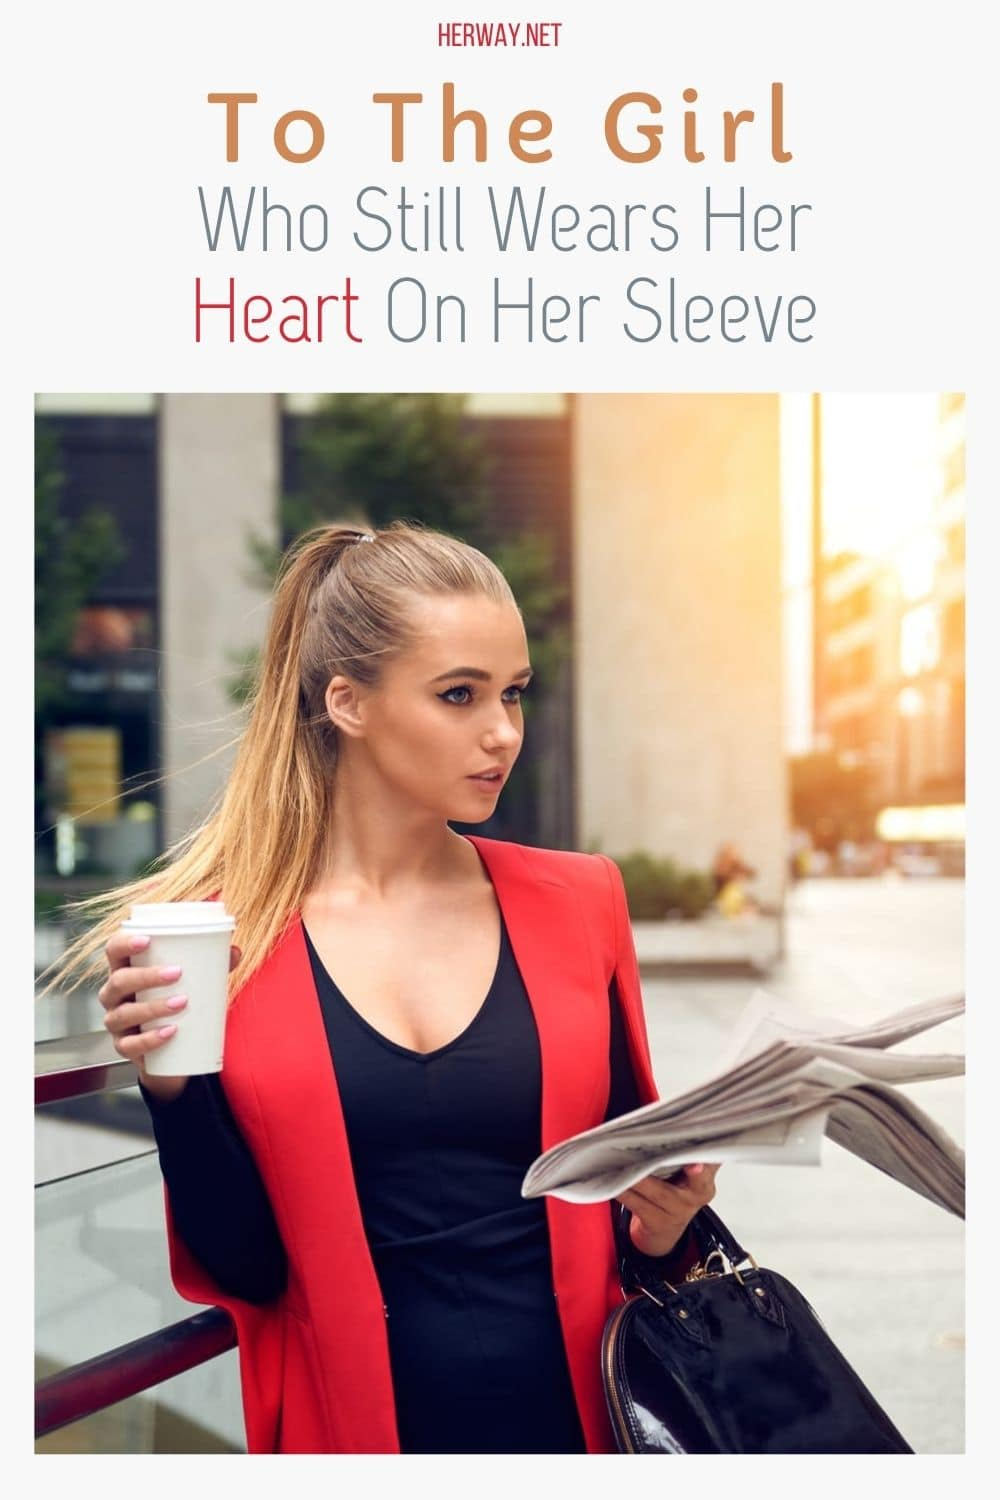 To The Girl Who Still Wears Her Heart On Her Sleeve